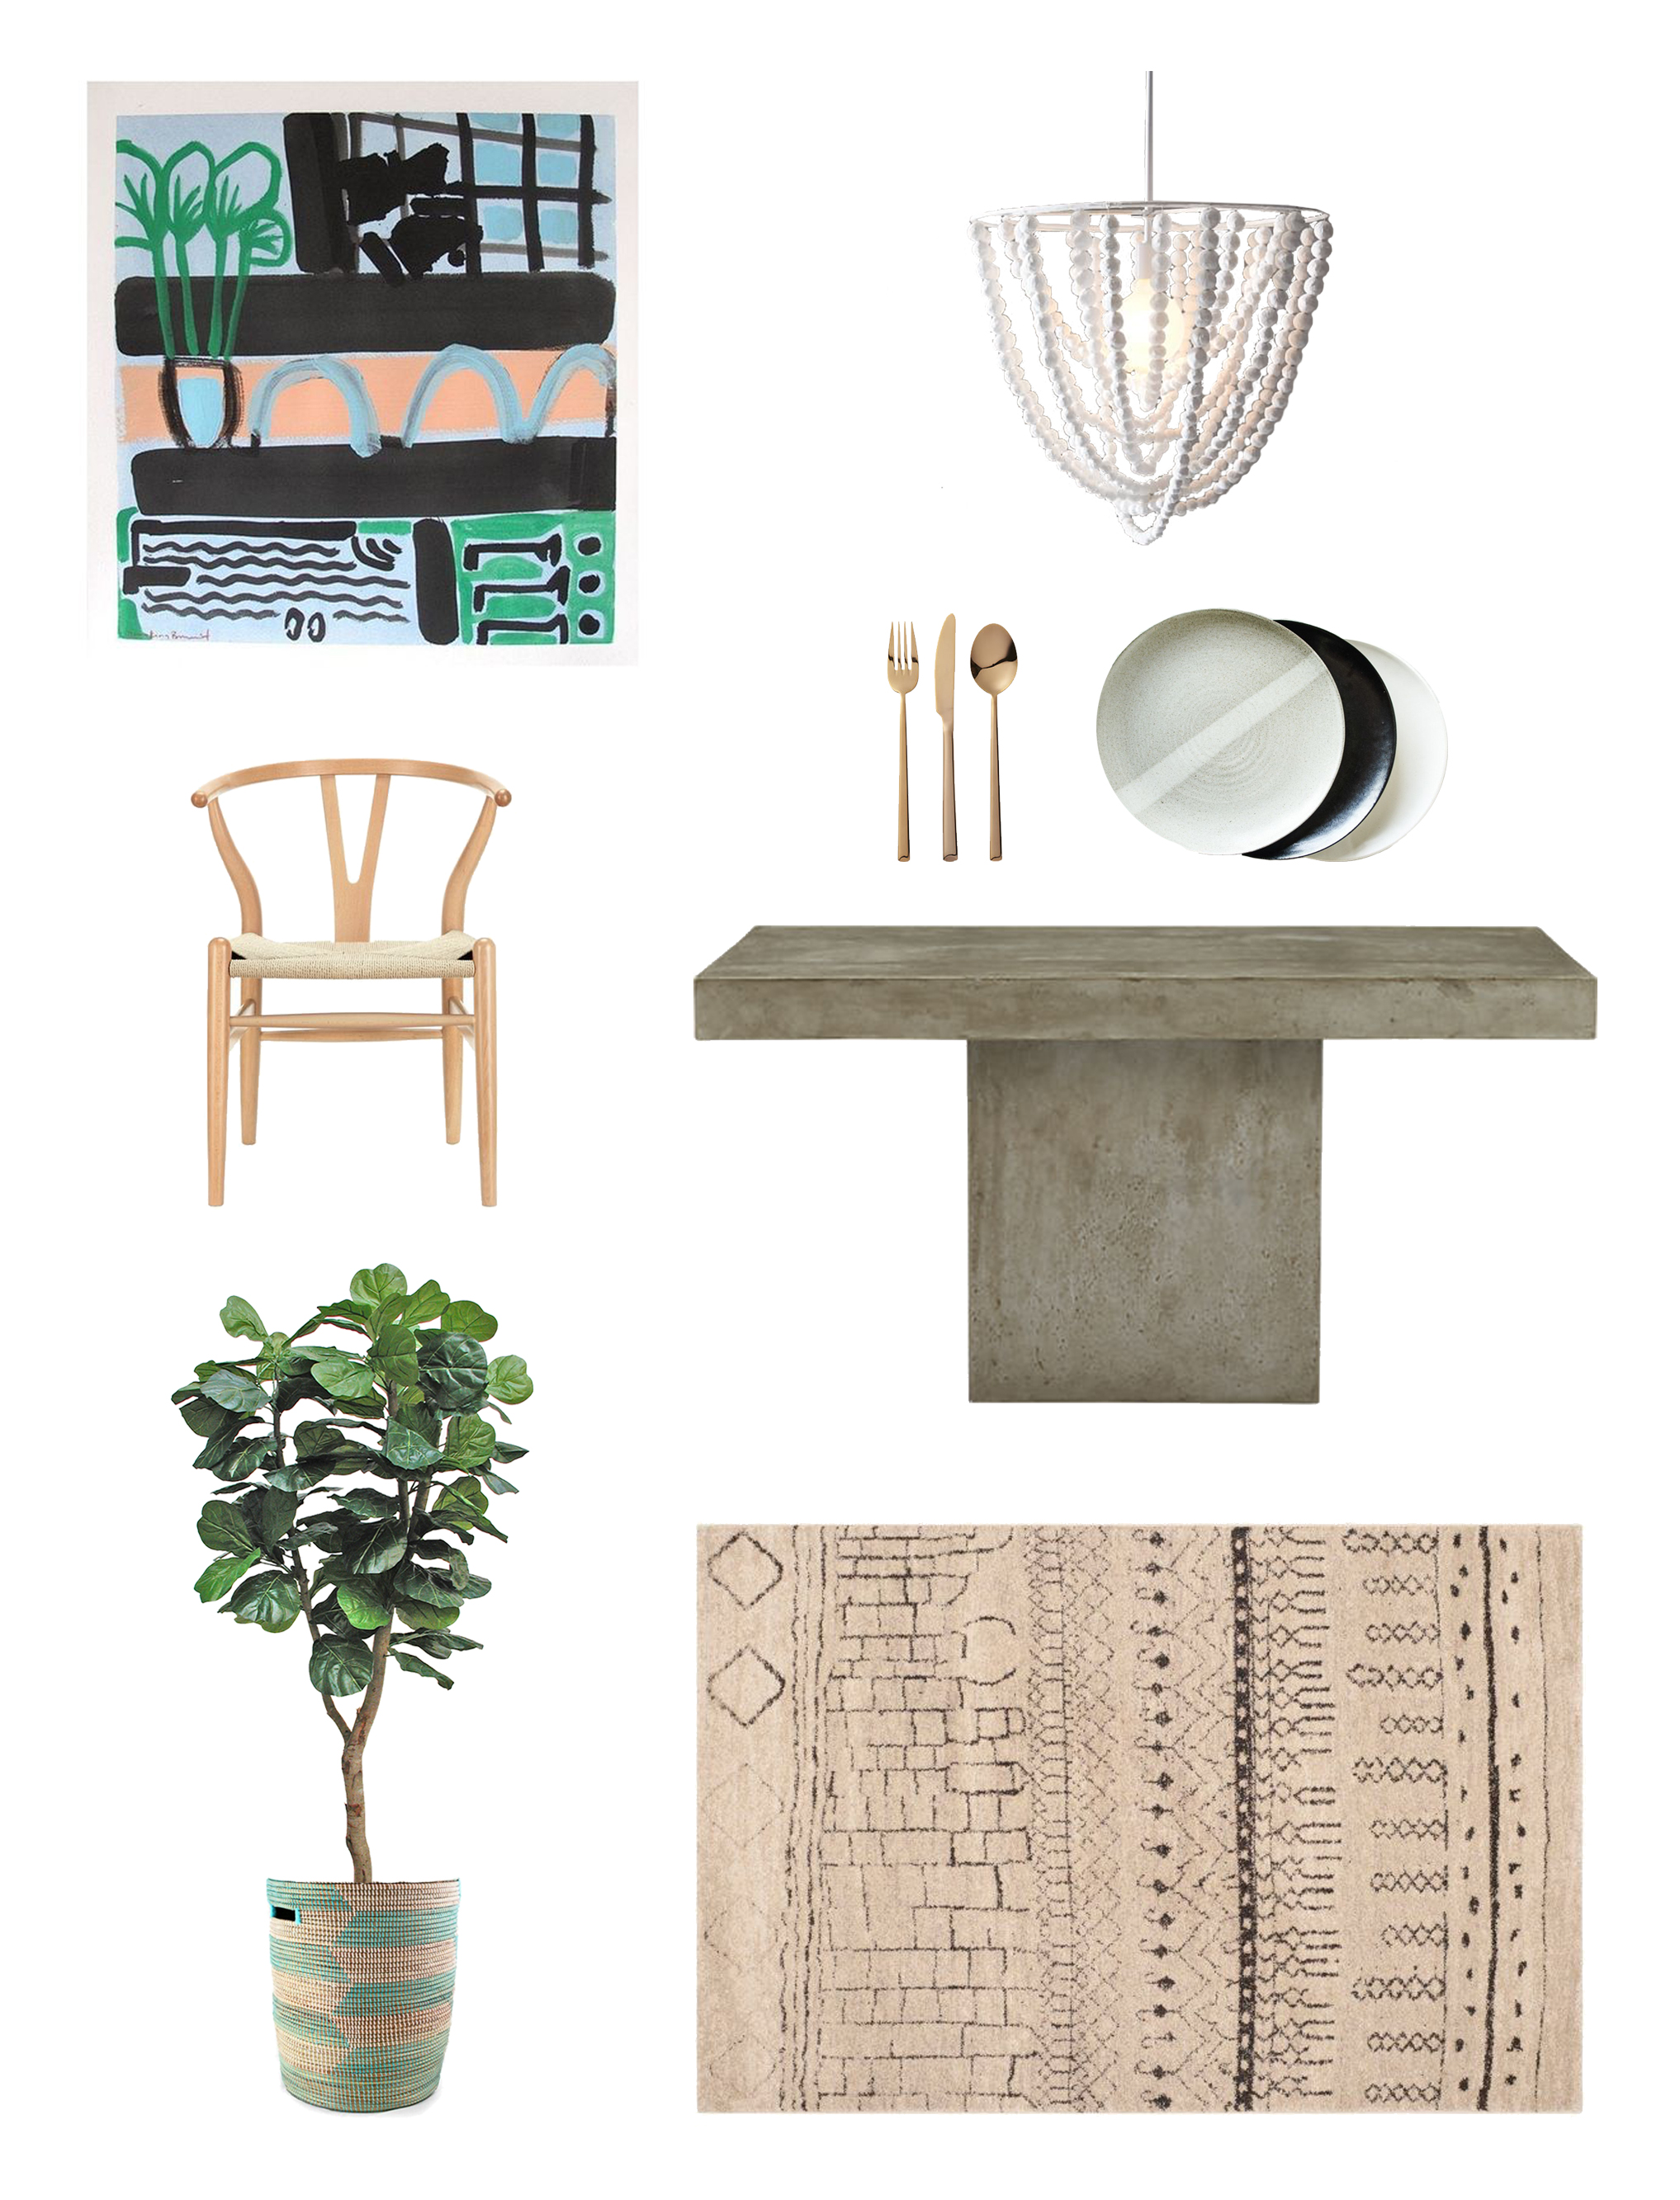 Painting  //  Light  //  Flatware  //  Dinnerware  //  Chair  //  Table  //  Rug  //  Plant  //  Basket